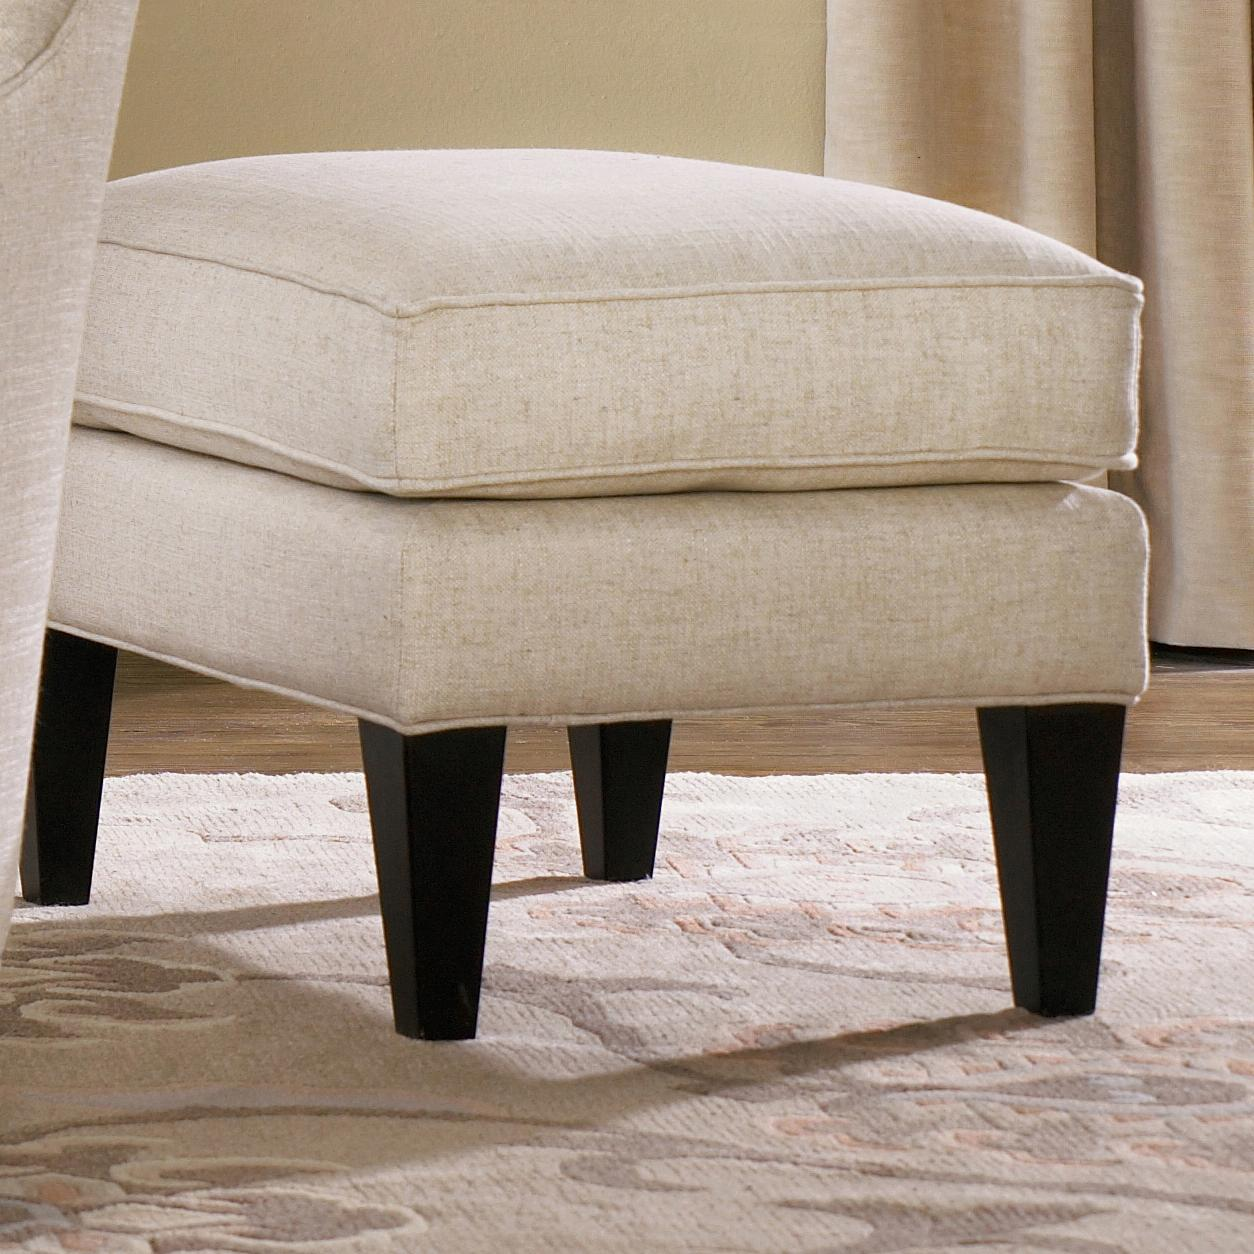 502 Style Group Ottoman by Smith Brothers at Turk Furniture